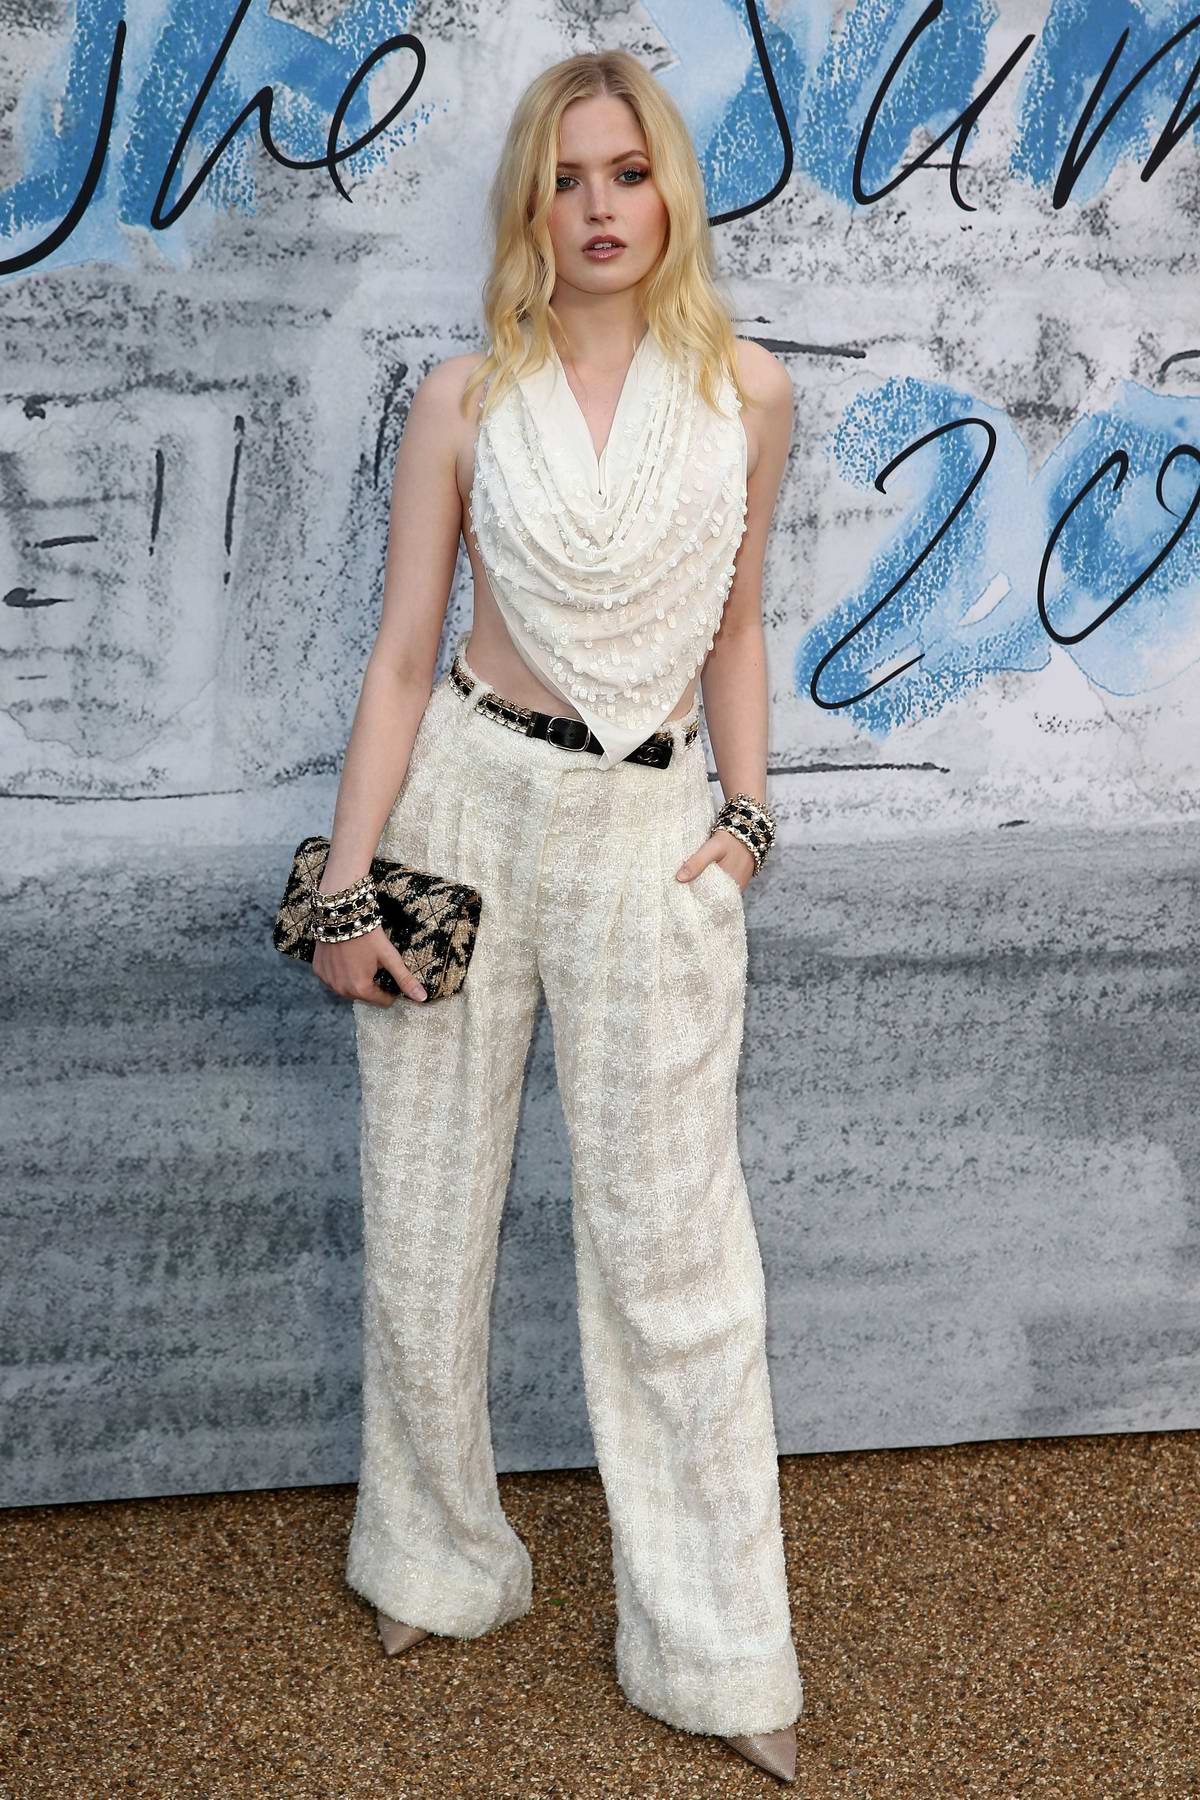 Ellie Bamber attends The Summer Party 2019 at Serpentine Gallery at Kensington Gardens in London, UK